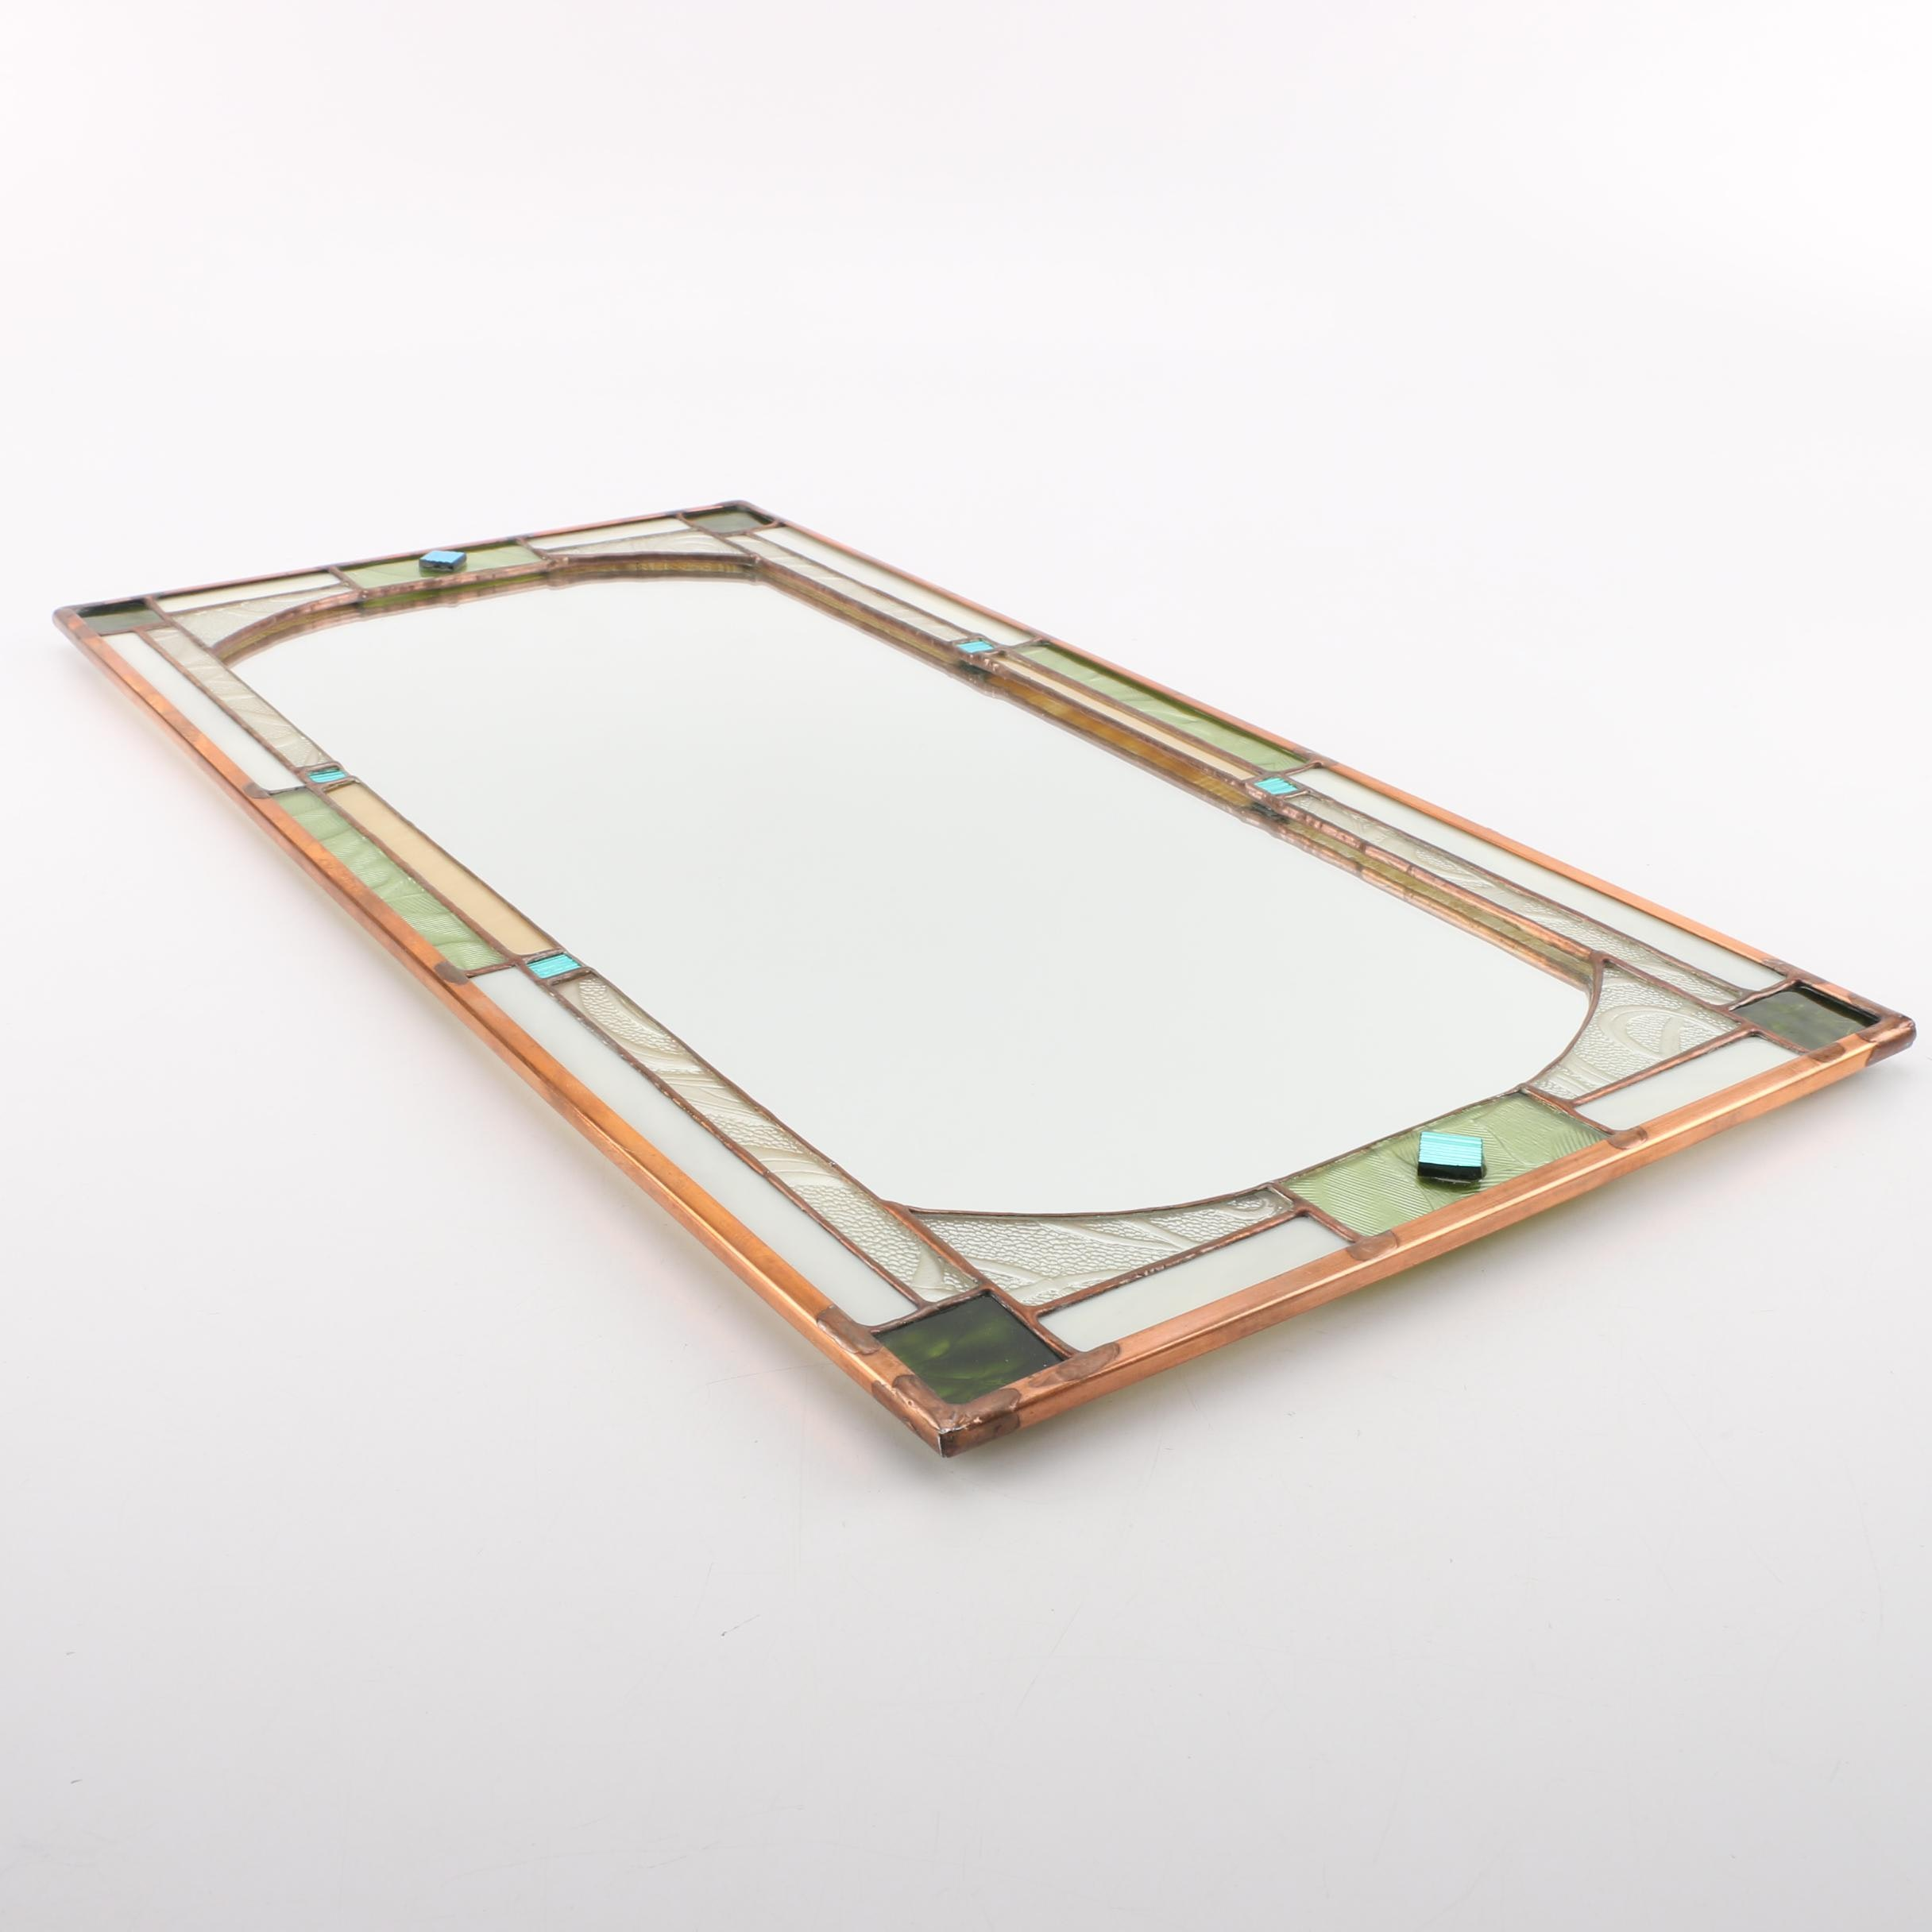 Copper Framed and Paneled Wall Mirror